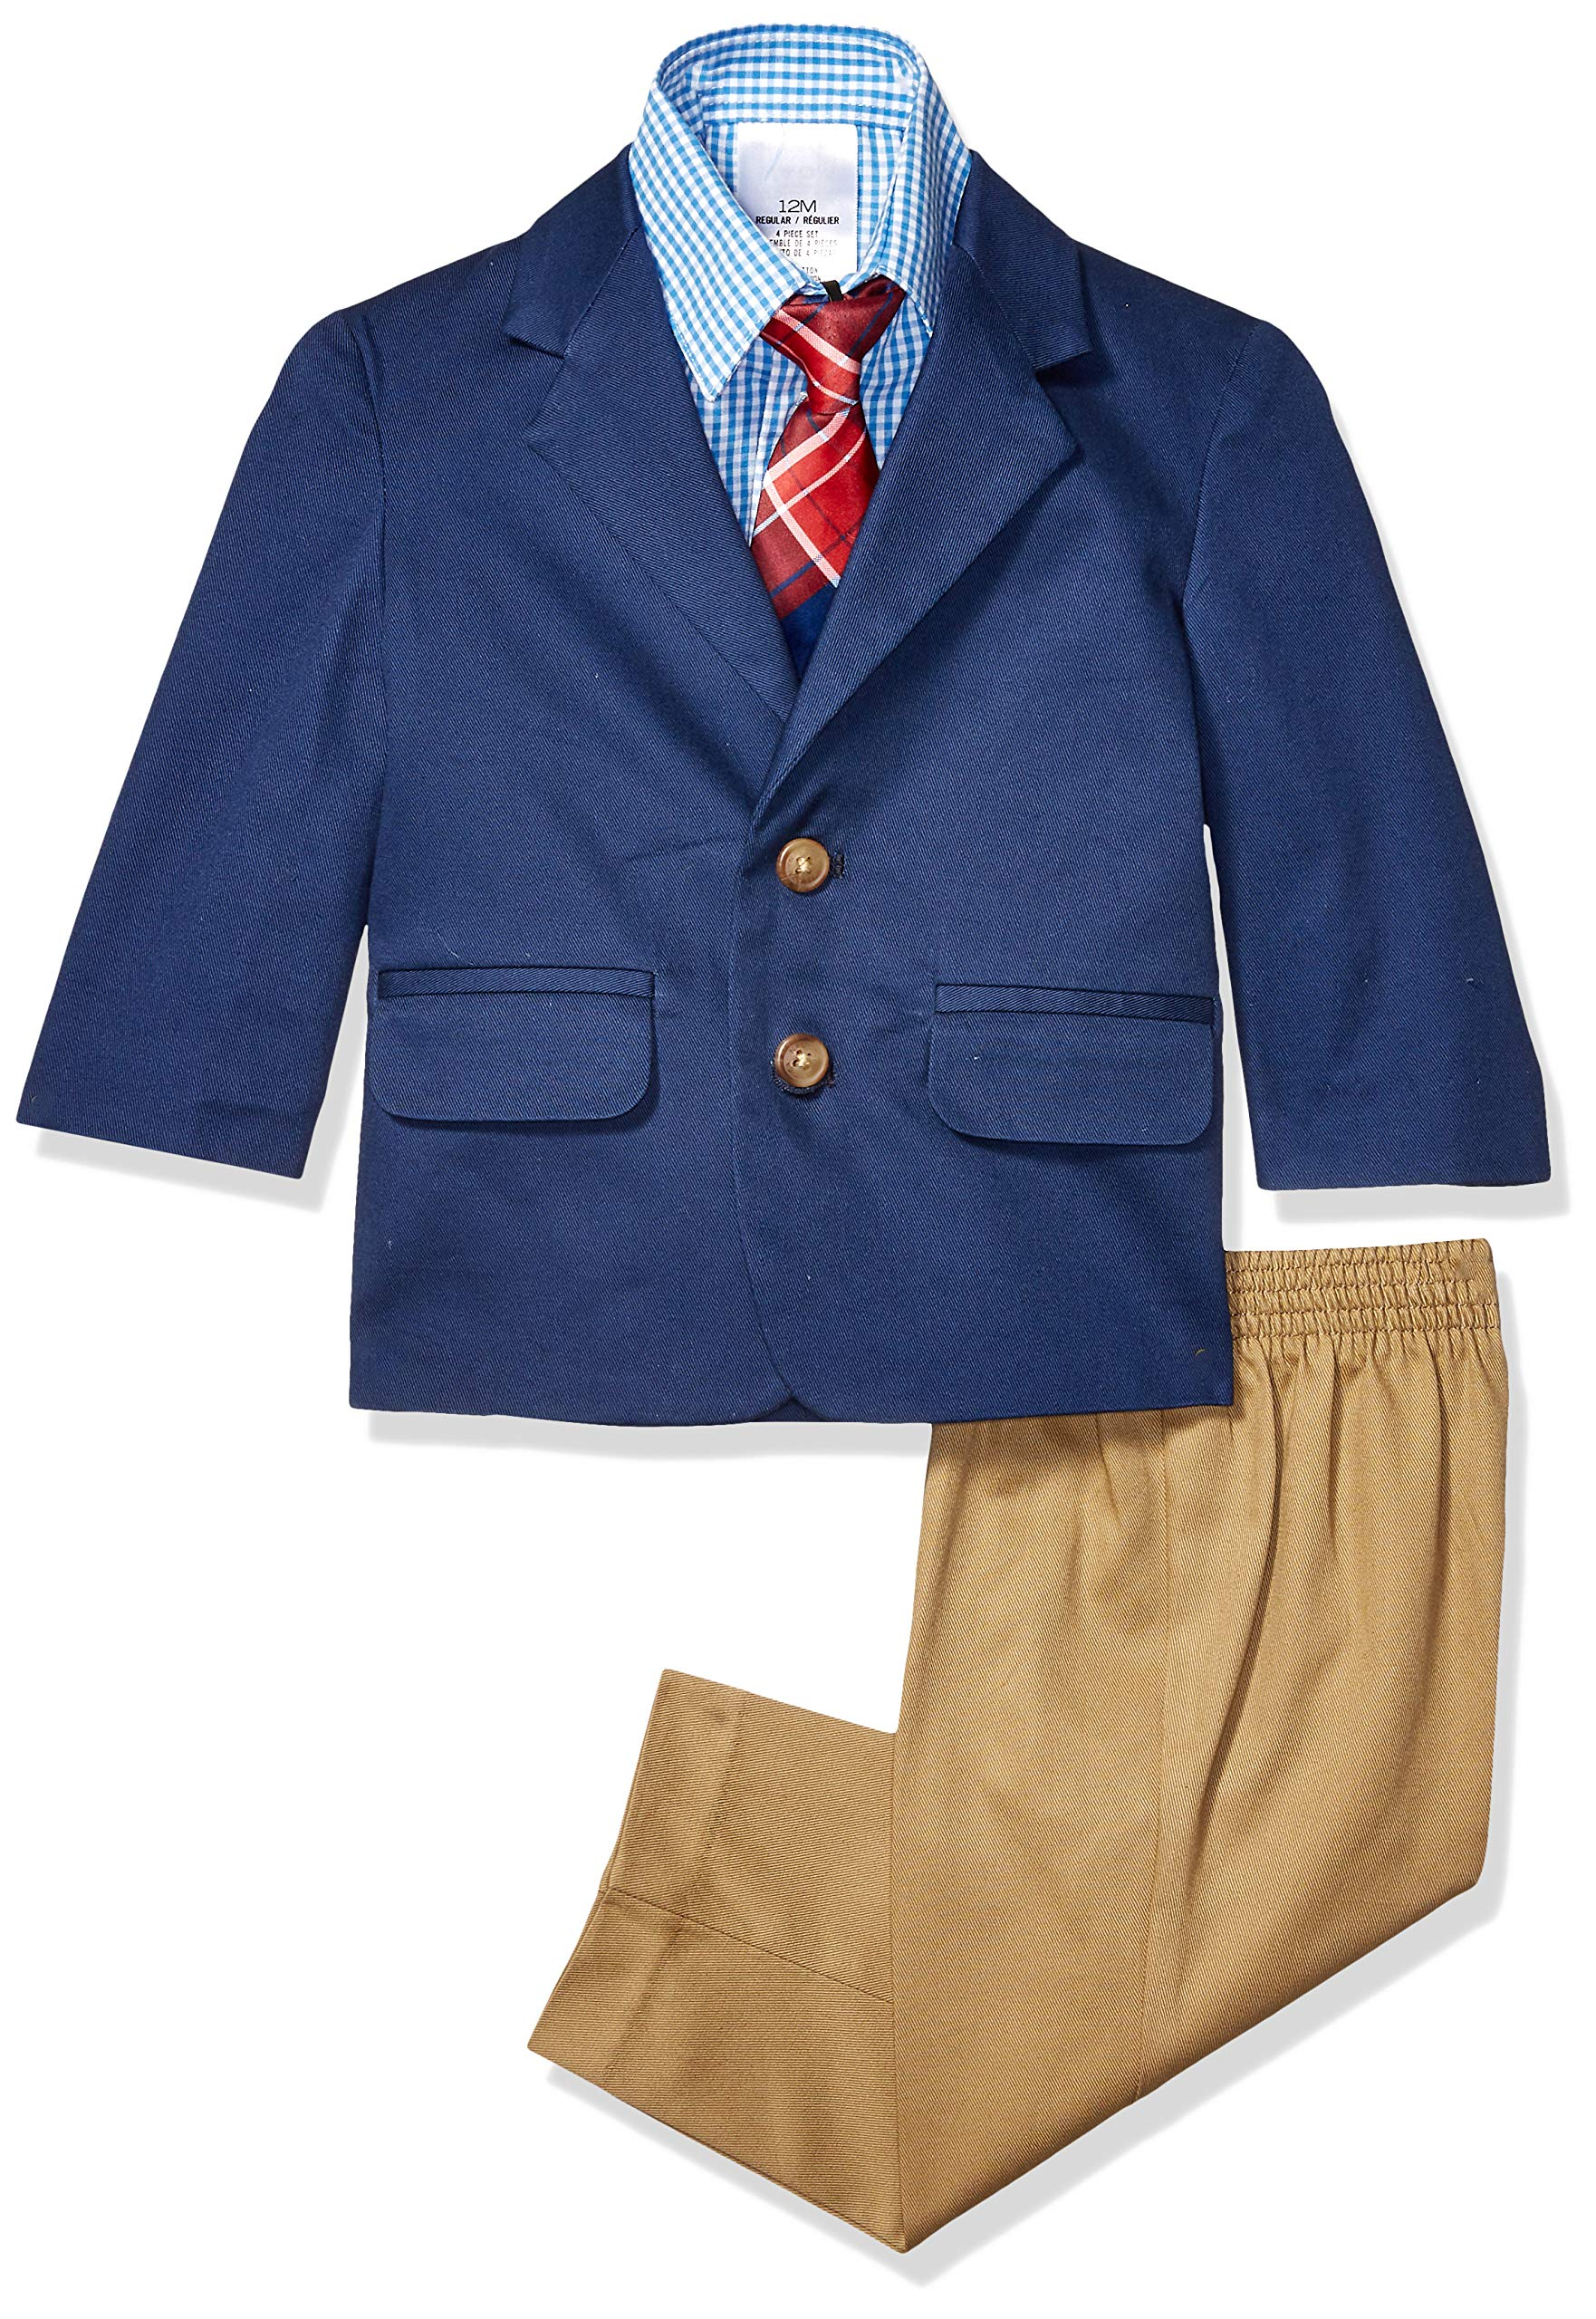 Pants Jacket Nautica Baby Boys 4-Piece Suit Set with Dress Shirt and Tie